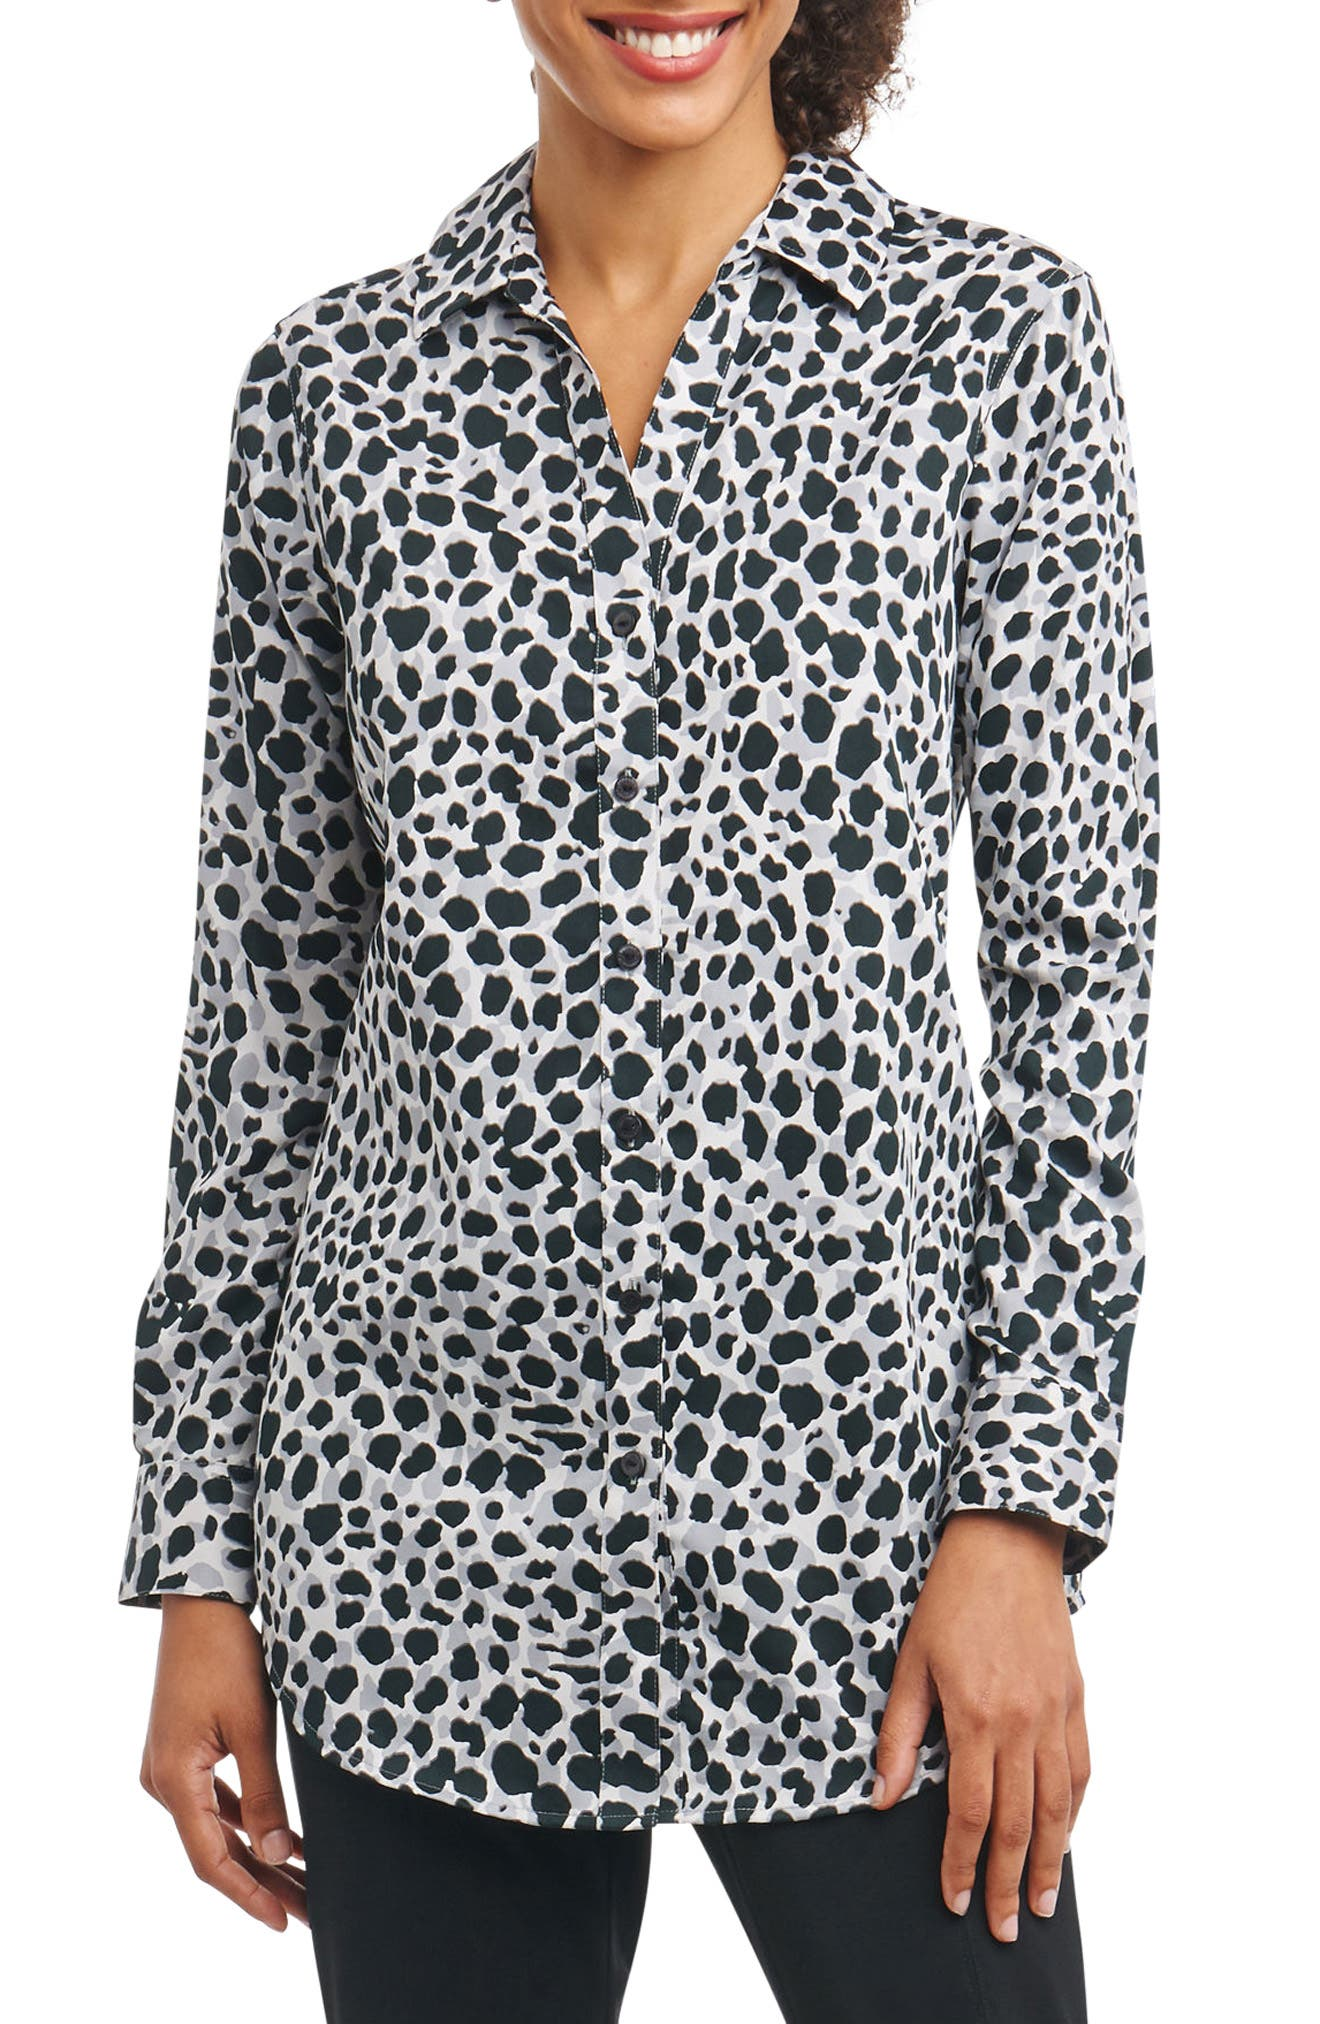 Alternate Image 1 Selected - Foxcroft Fay Animal Print Shirt